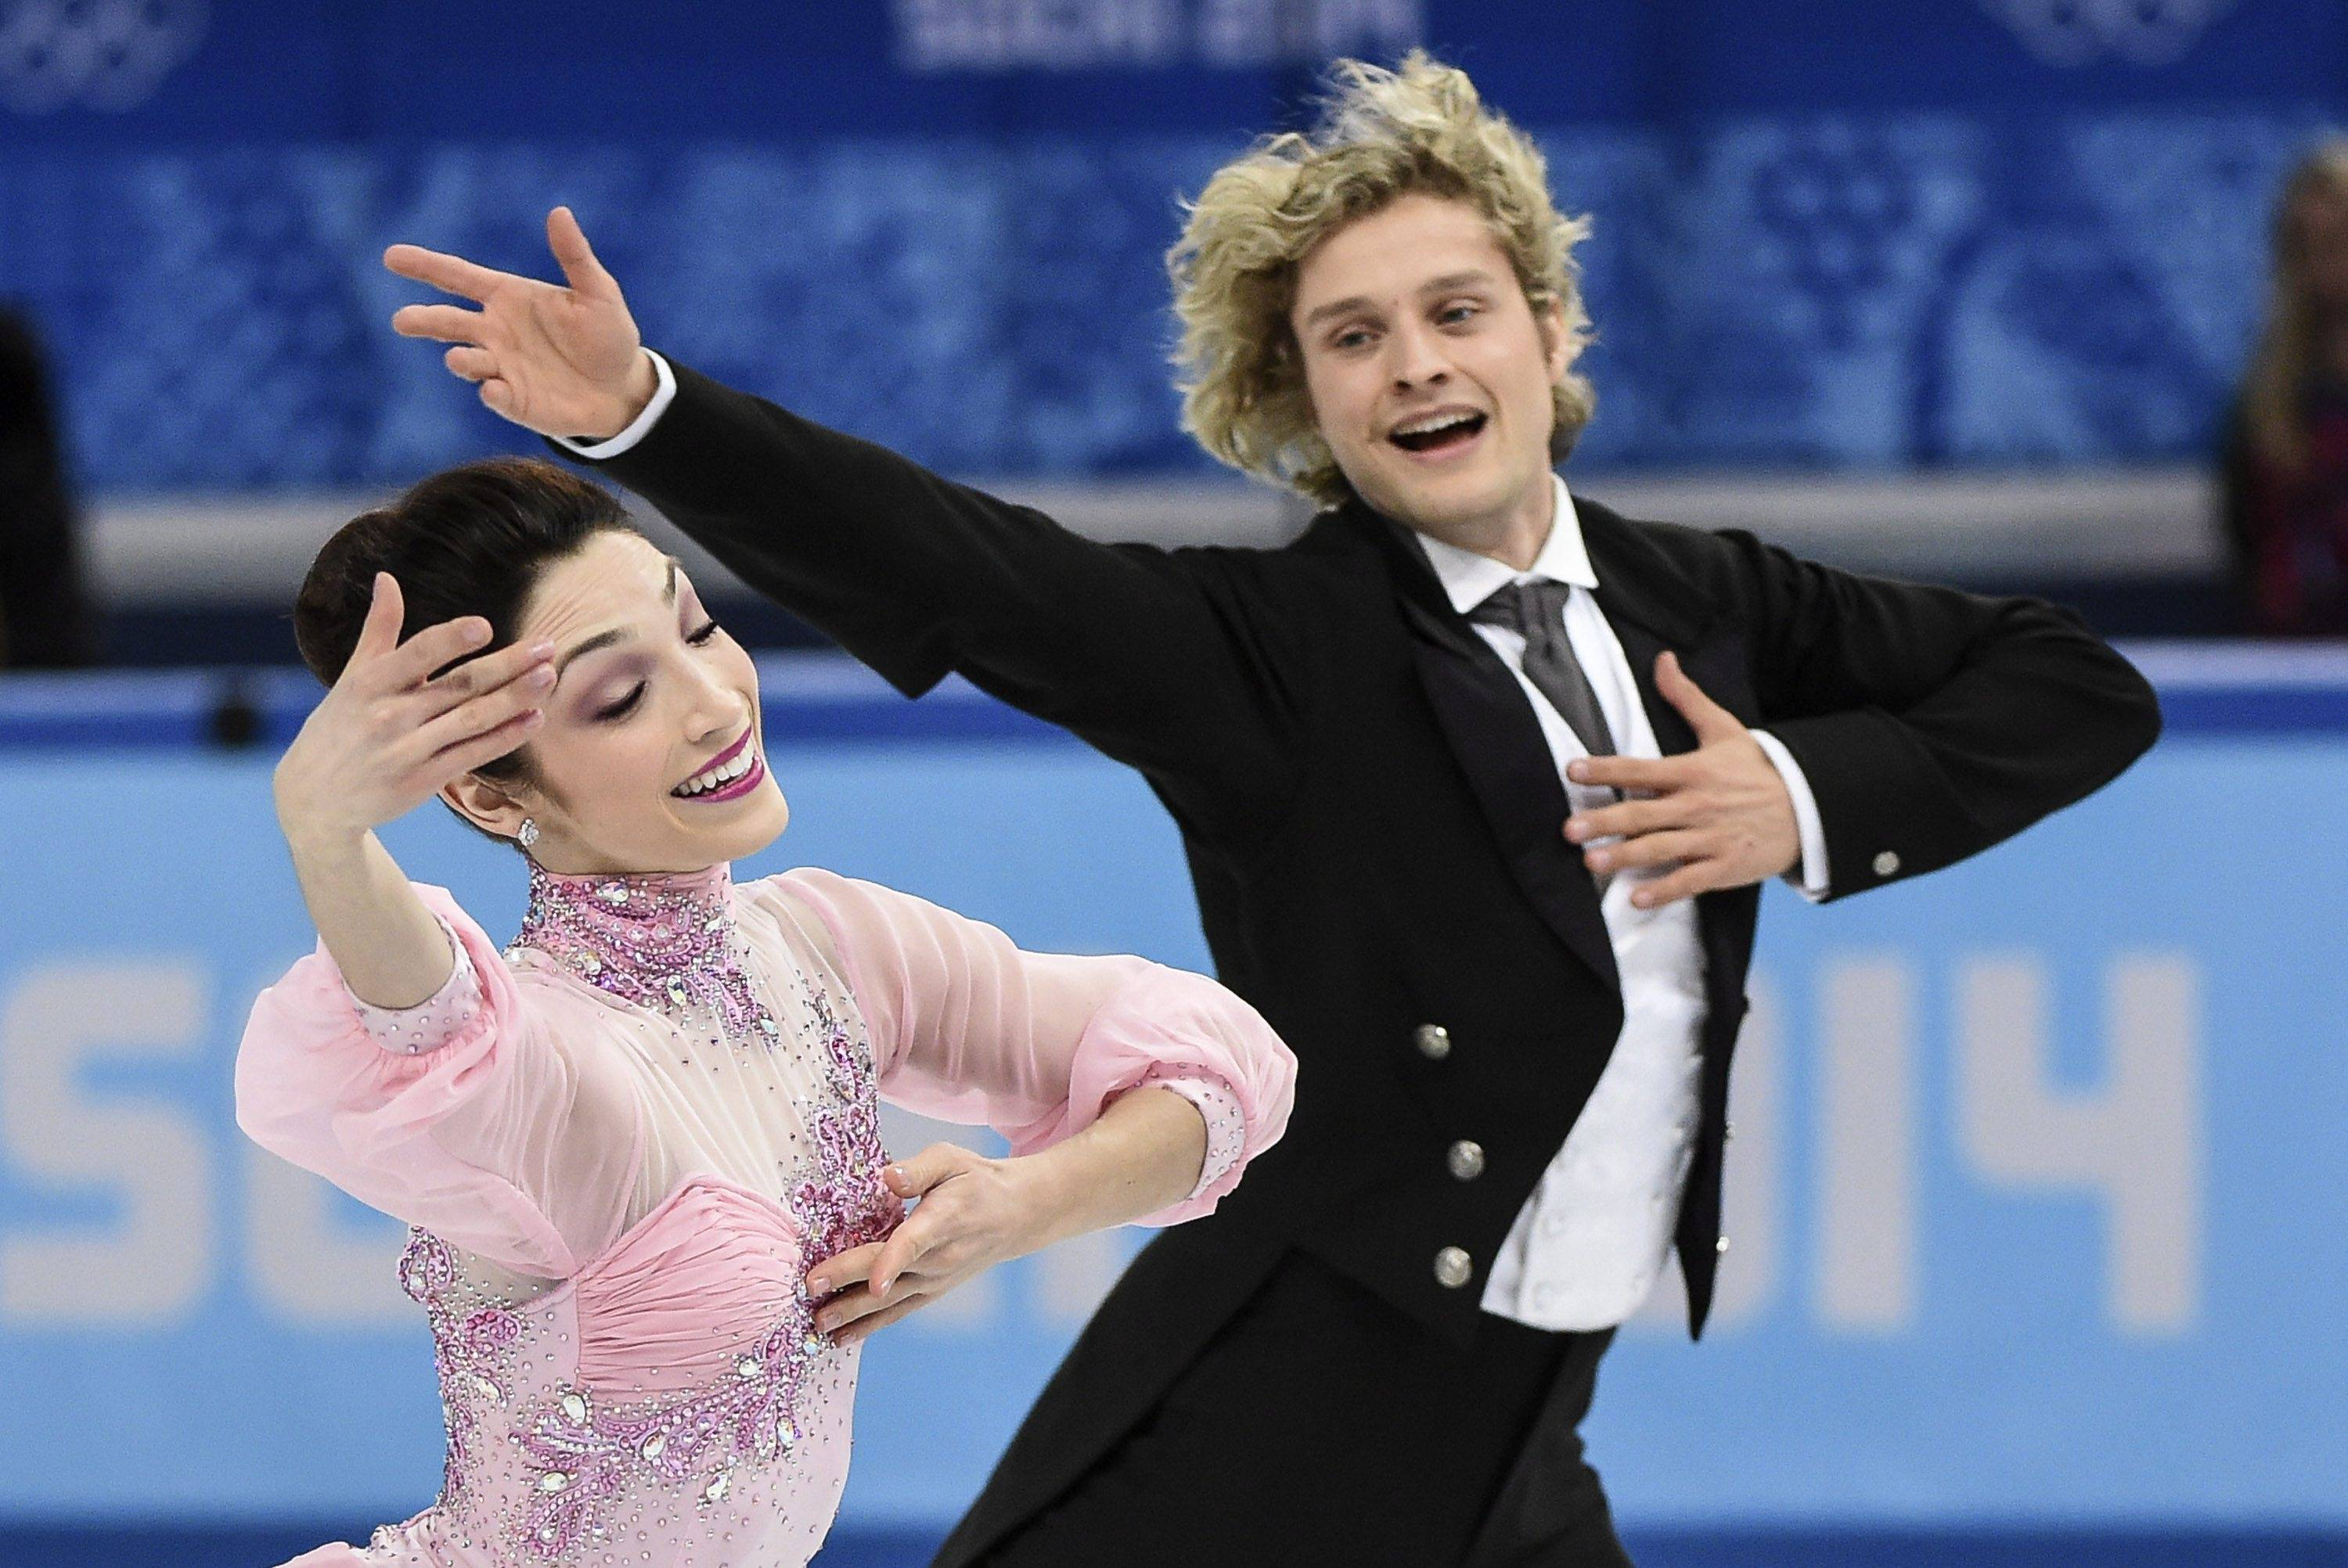 Meryl Davis and Charlie White, of the United States, compete in the ice dance short dance figure skating competition at the Iceberg Skating Palace during the Winter Olympics, Sunday, Feb. 16, 2014, in Sochi, Russia.